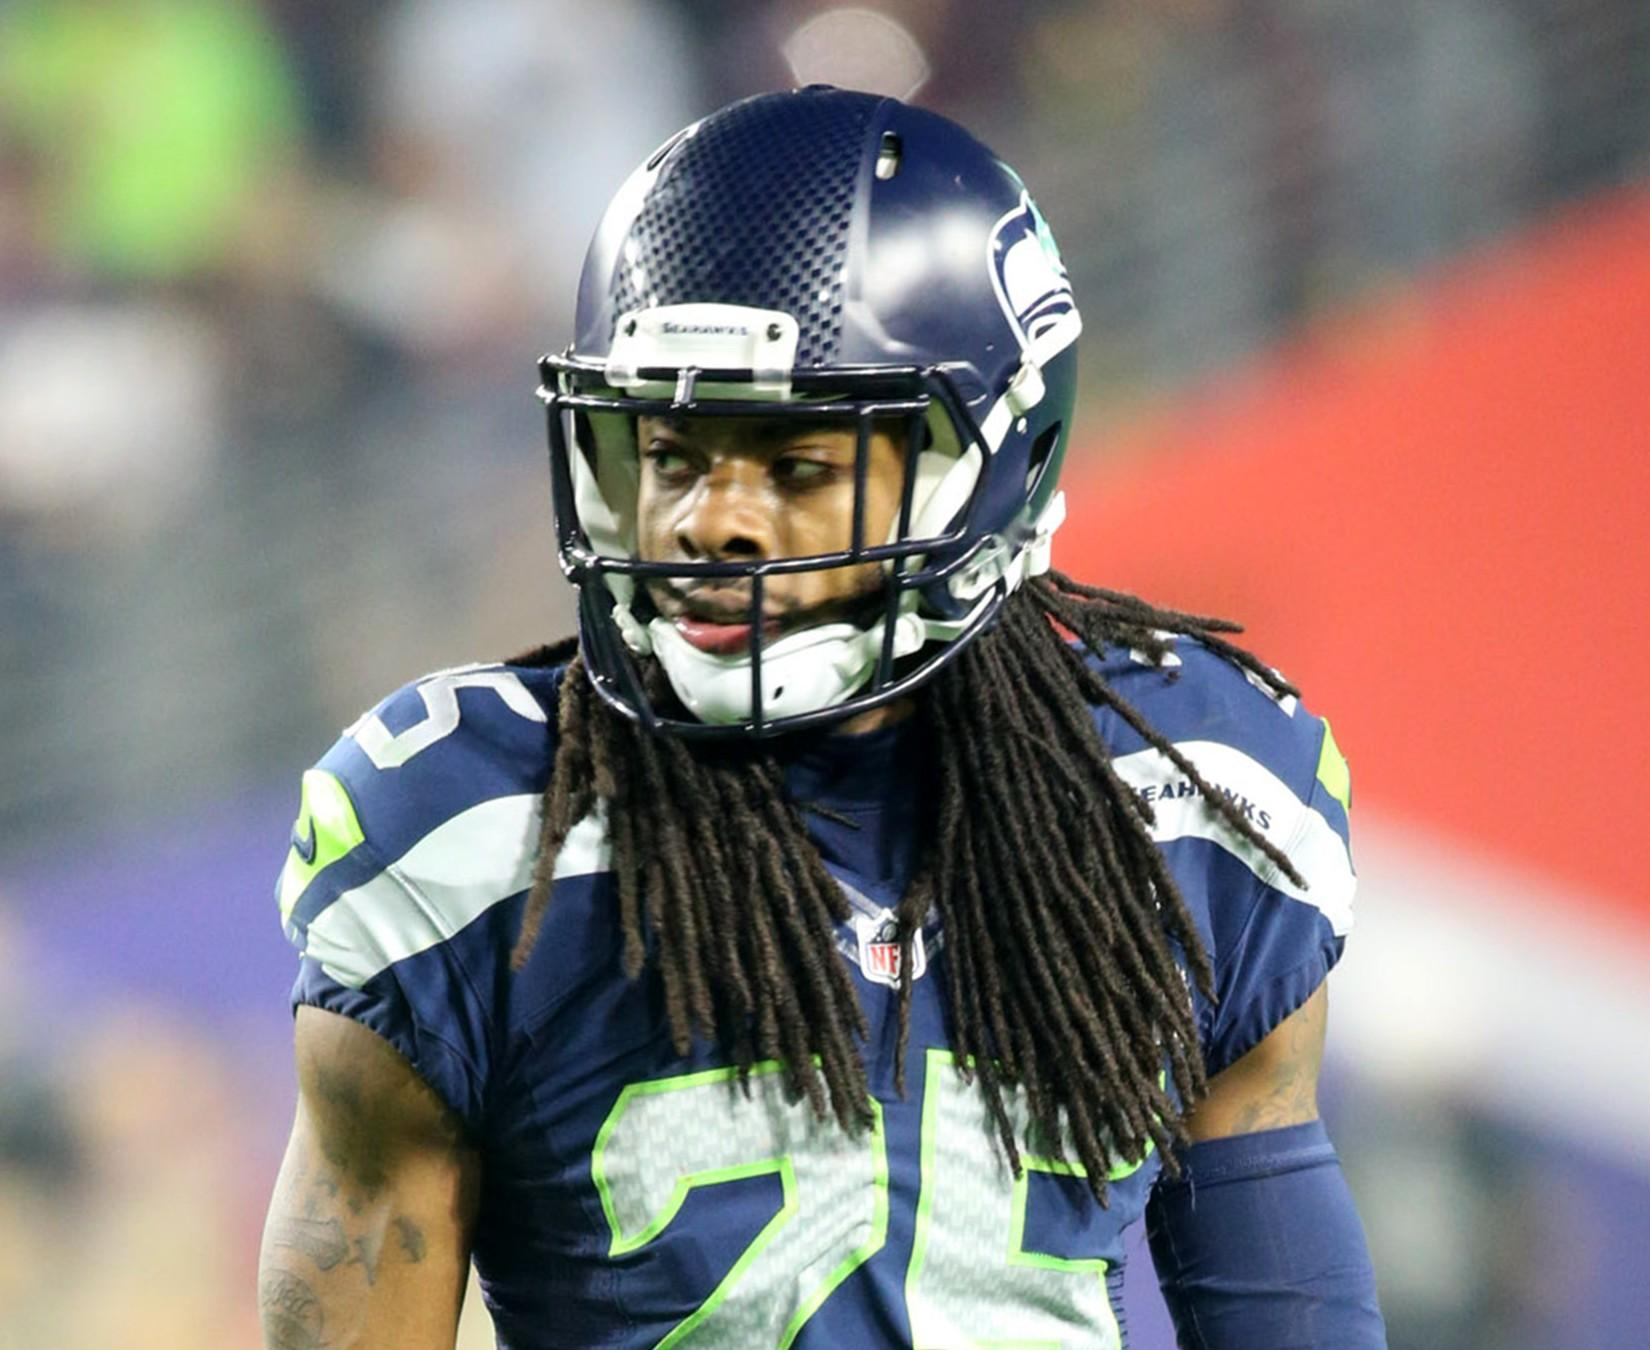 Cornerback+Richard+Sherman+of+The+Seattle+Seahawks+recently+expressed+his+opinions+on+National+Signing+Day.+Is+he+correct%3F+Photo+courtesy+of+Tribune+News+Services